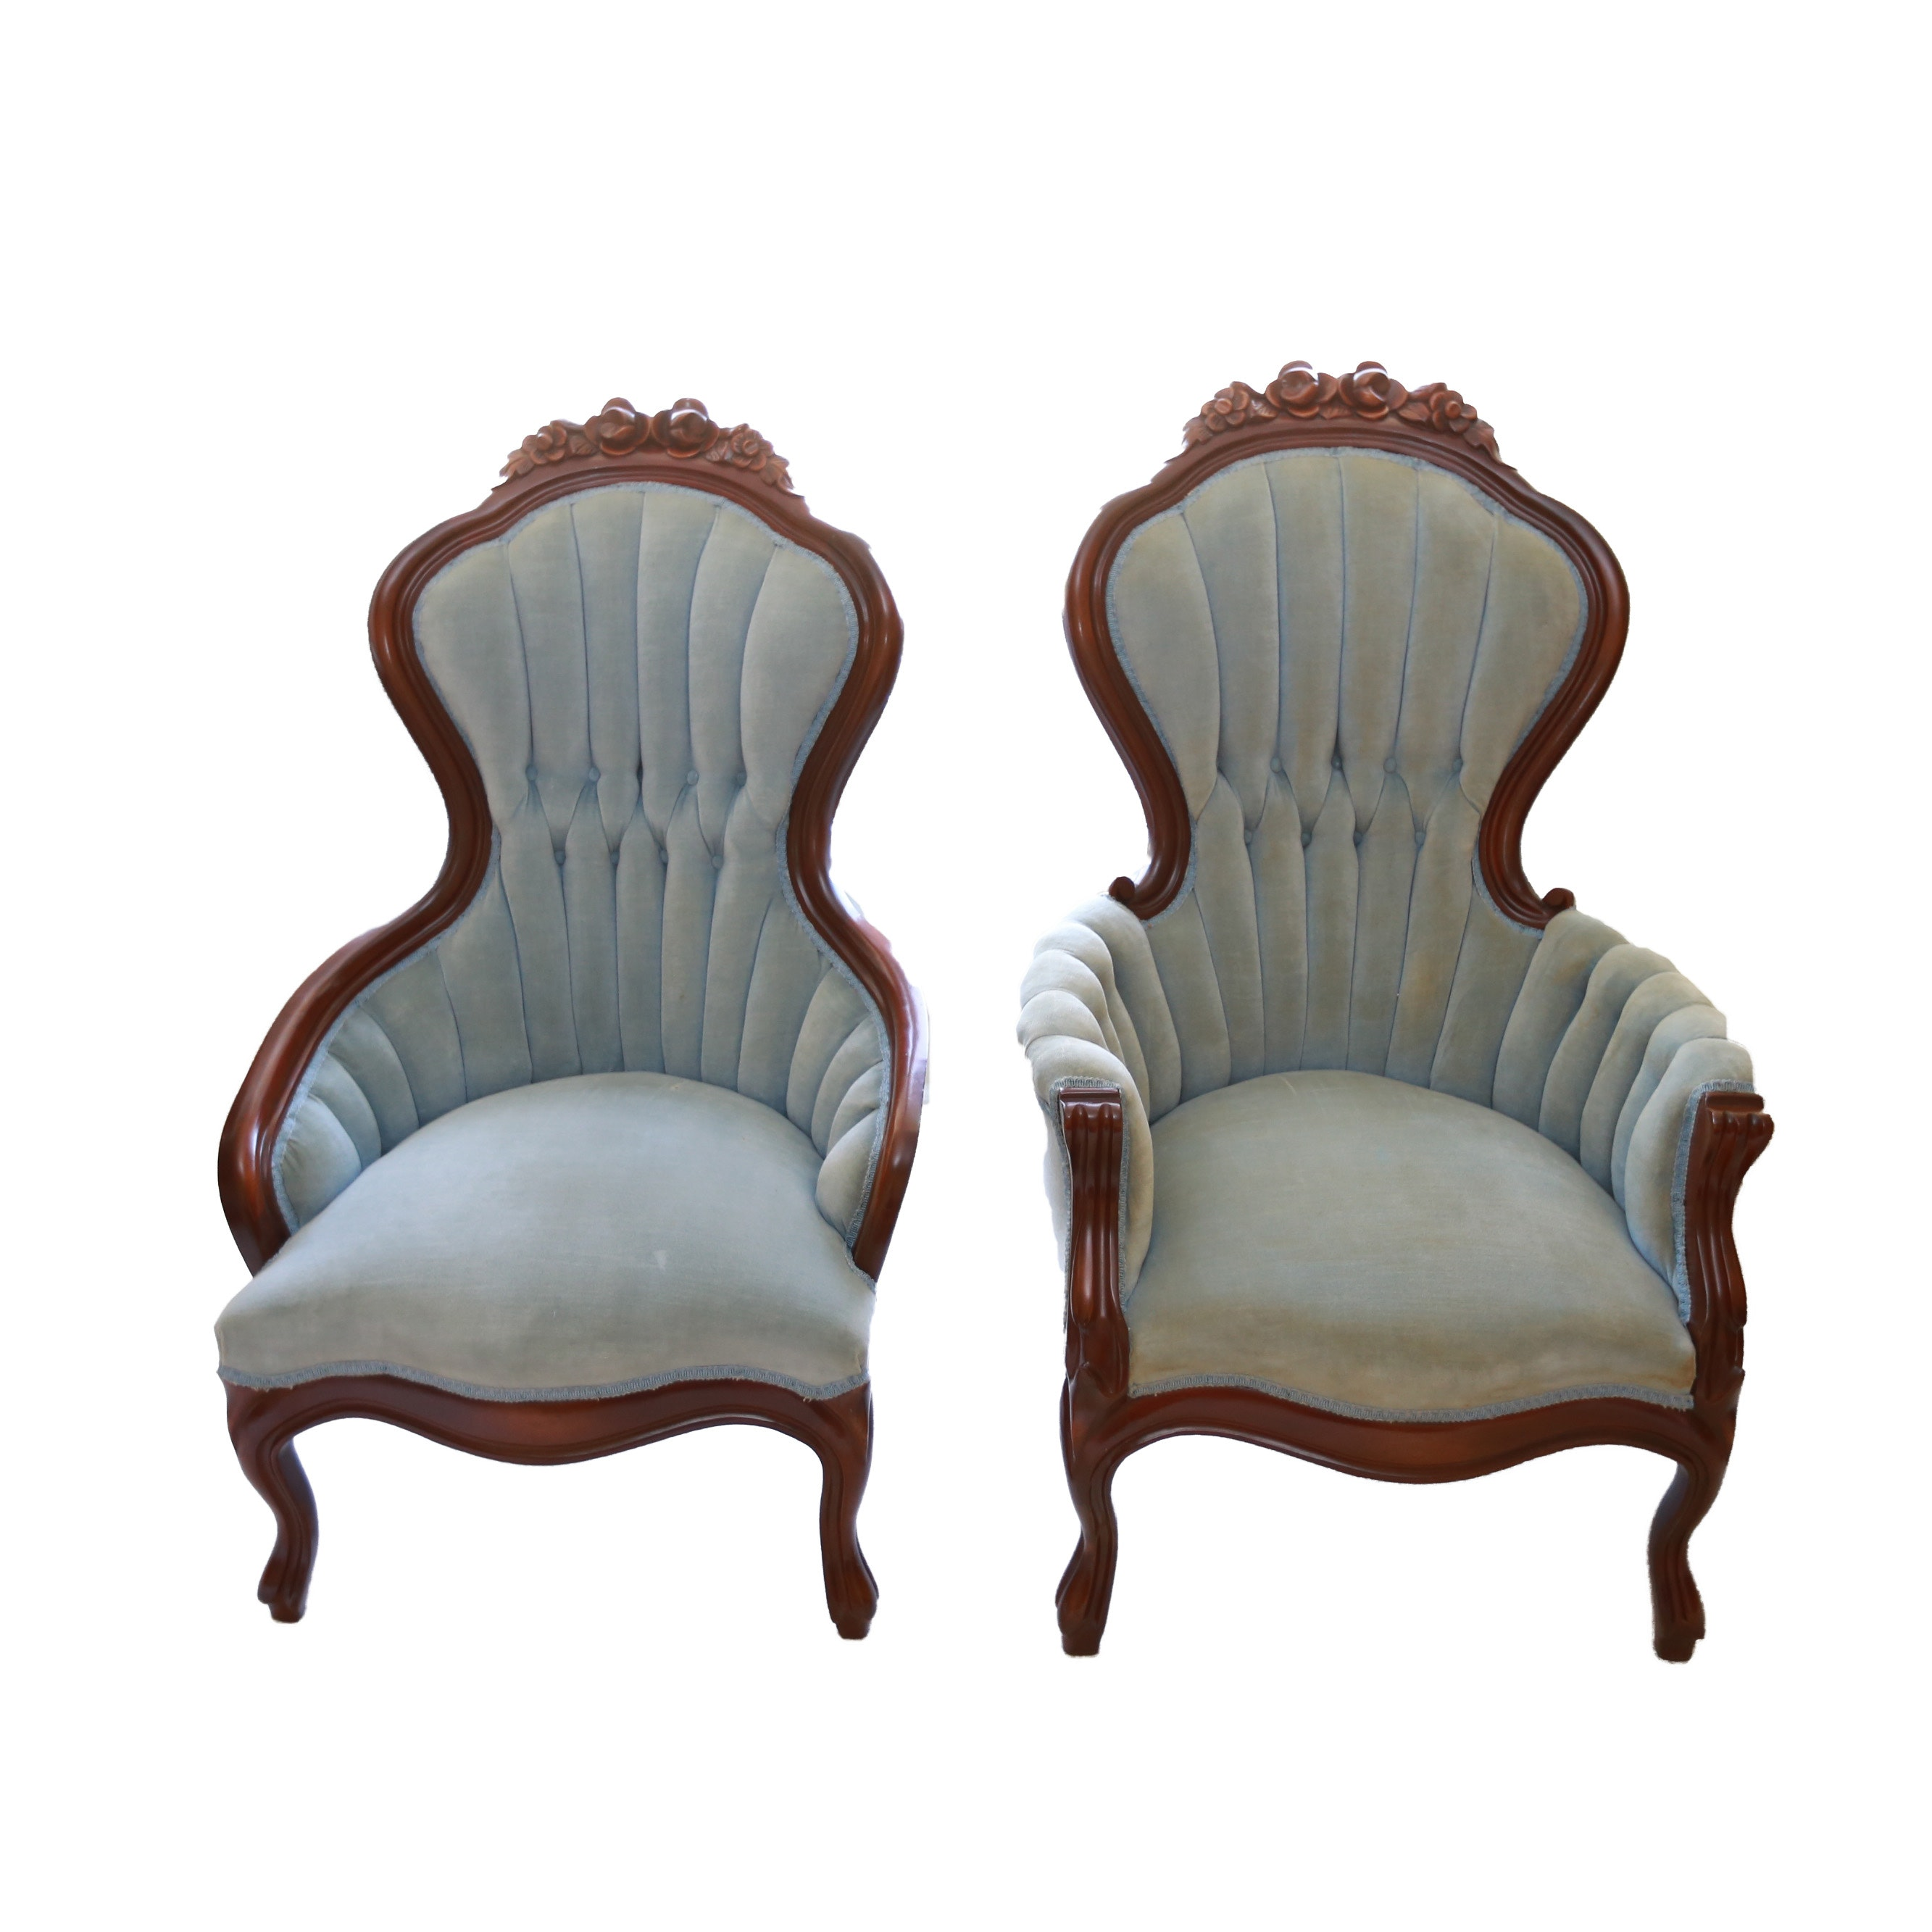 Delicieux Mid 20th Century Victorian Style Tufted High Back Chairs ...